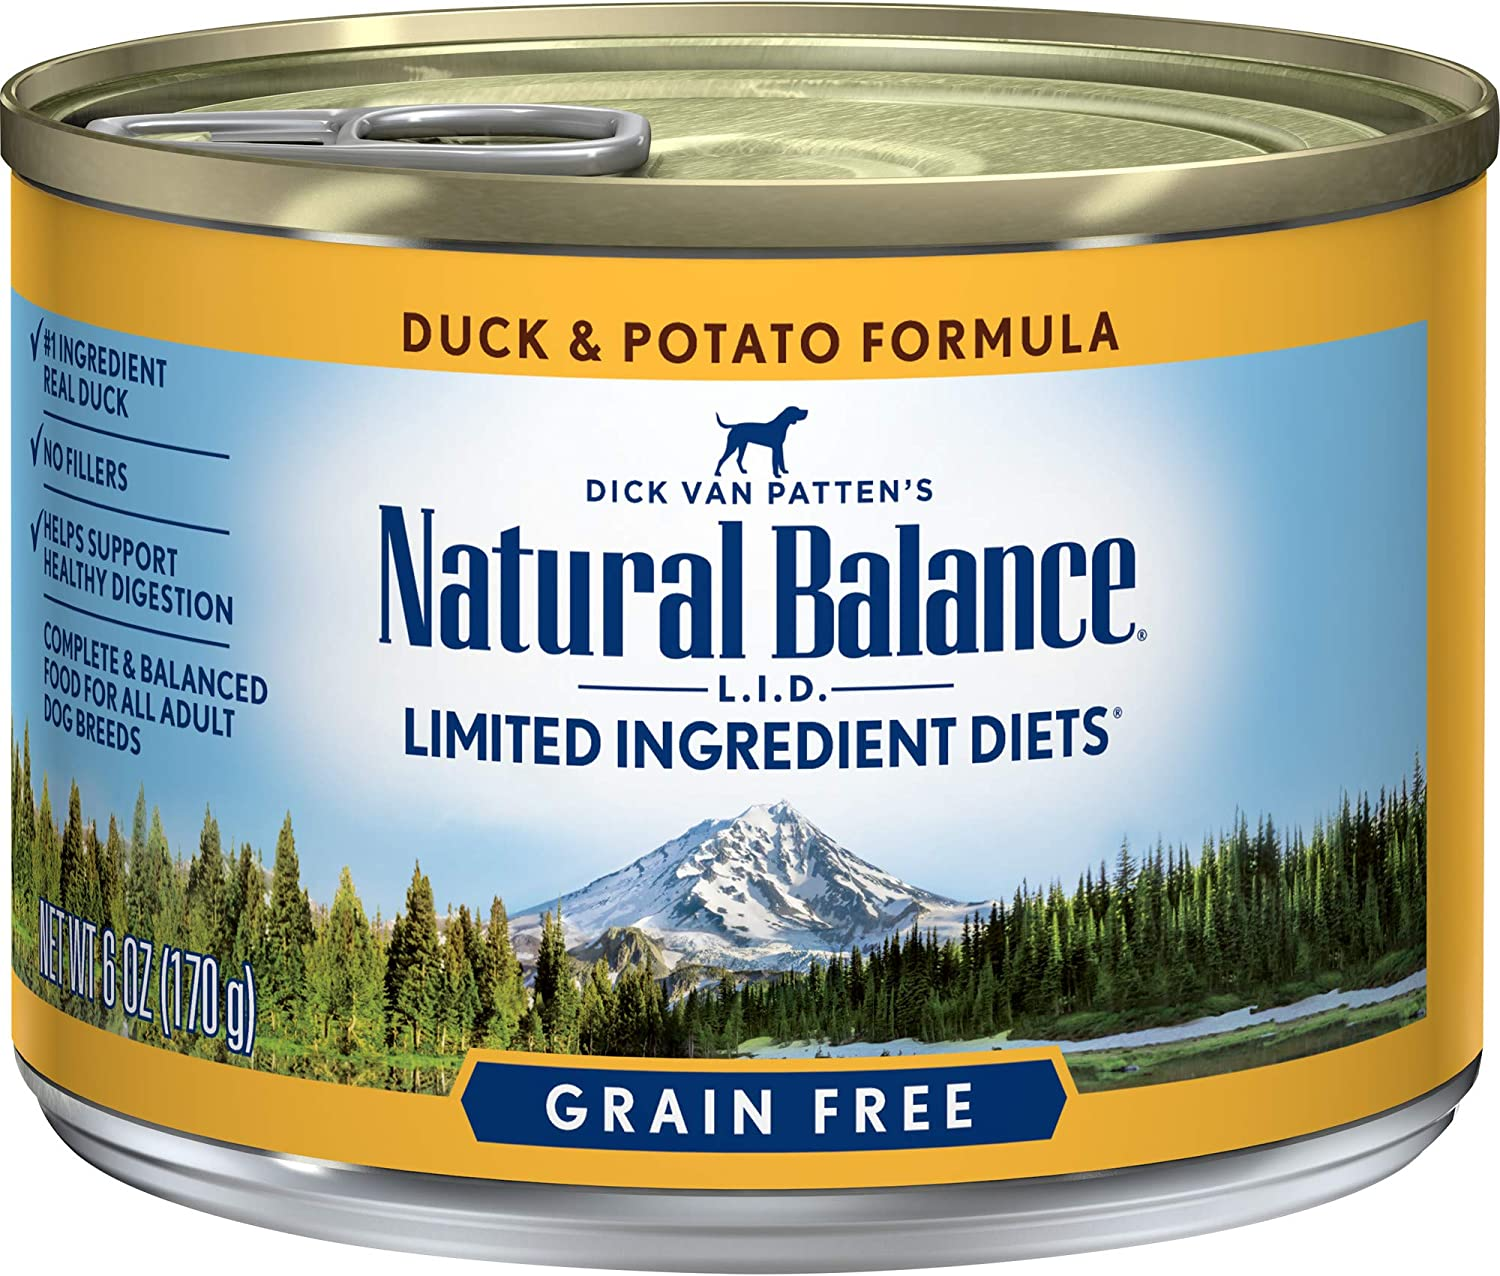 Natural Balance L.I.D. Limited Ingredient Diets Wet Dog Food, Duck & Potato Formula, 6 Ounce Can (Pack of 12) (Discontinued by Manufacturer)